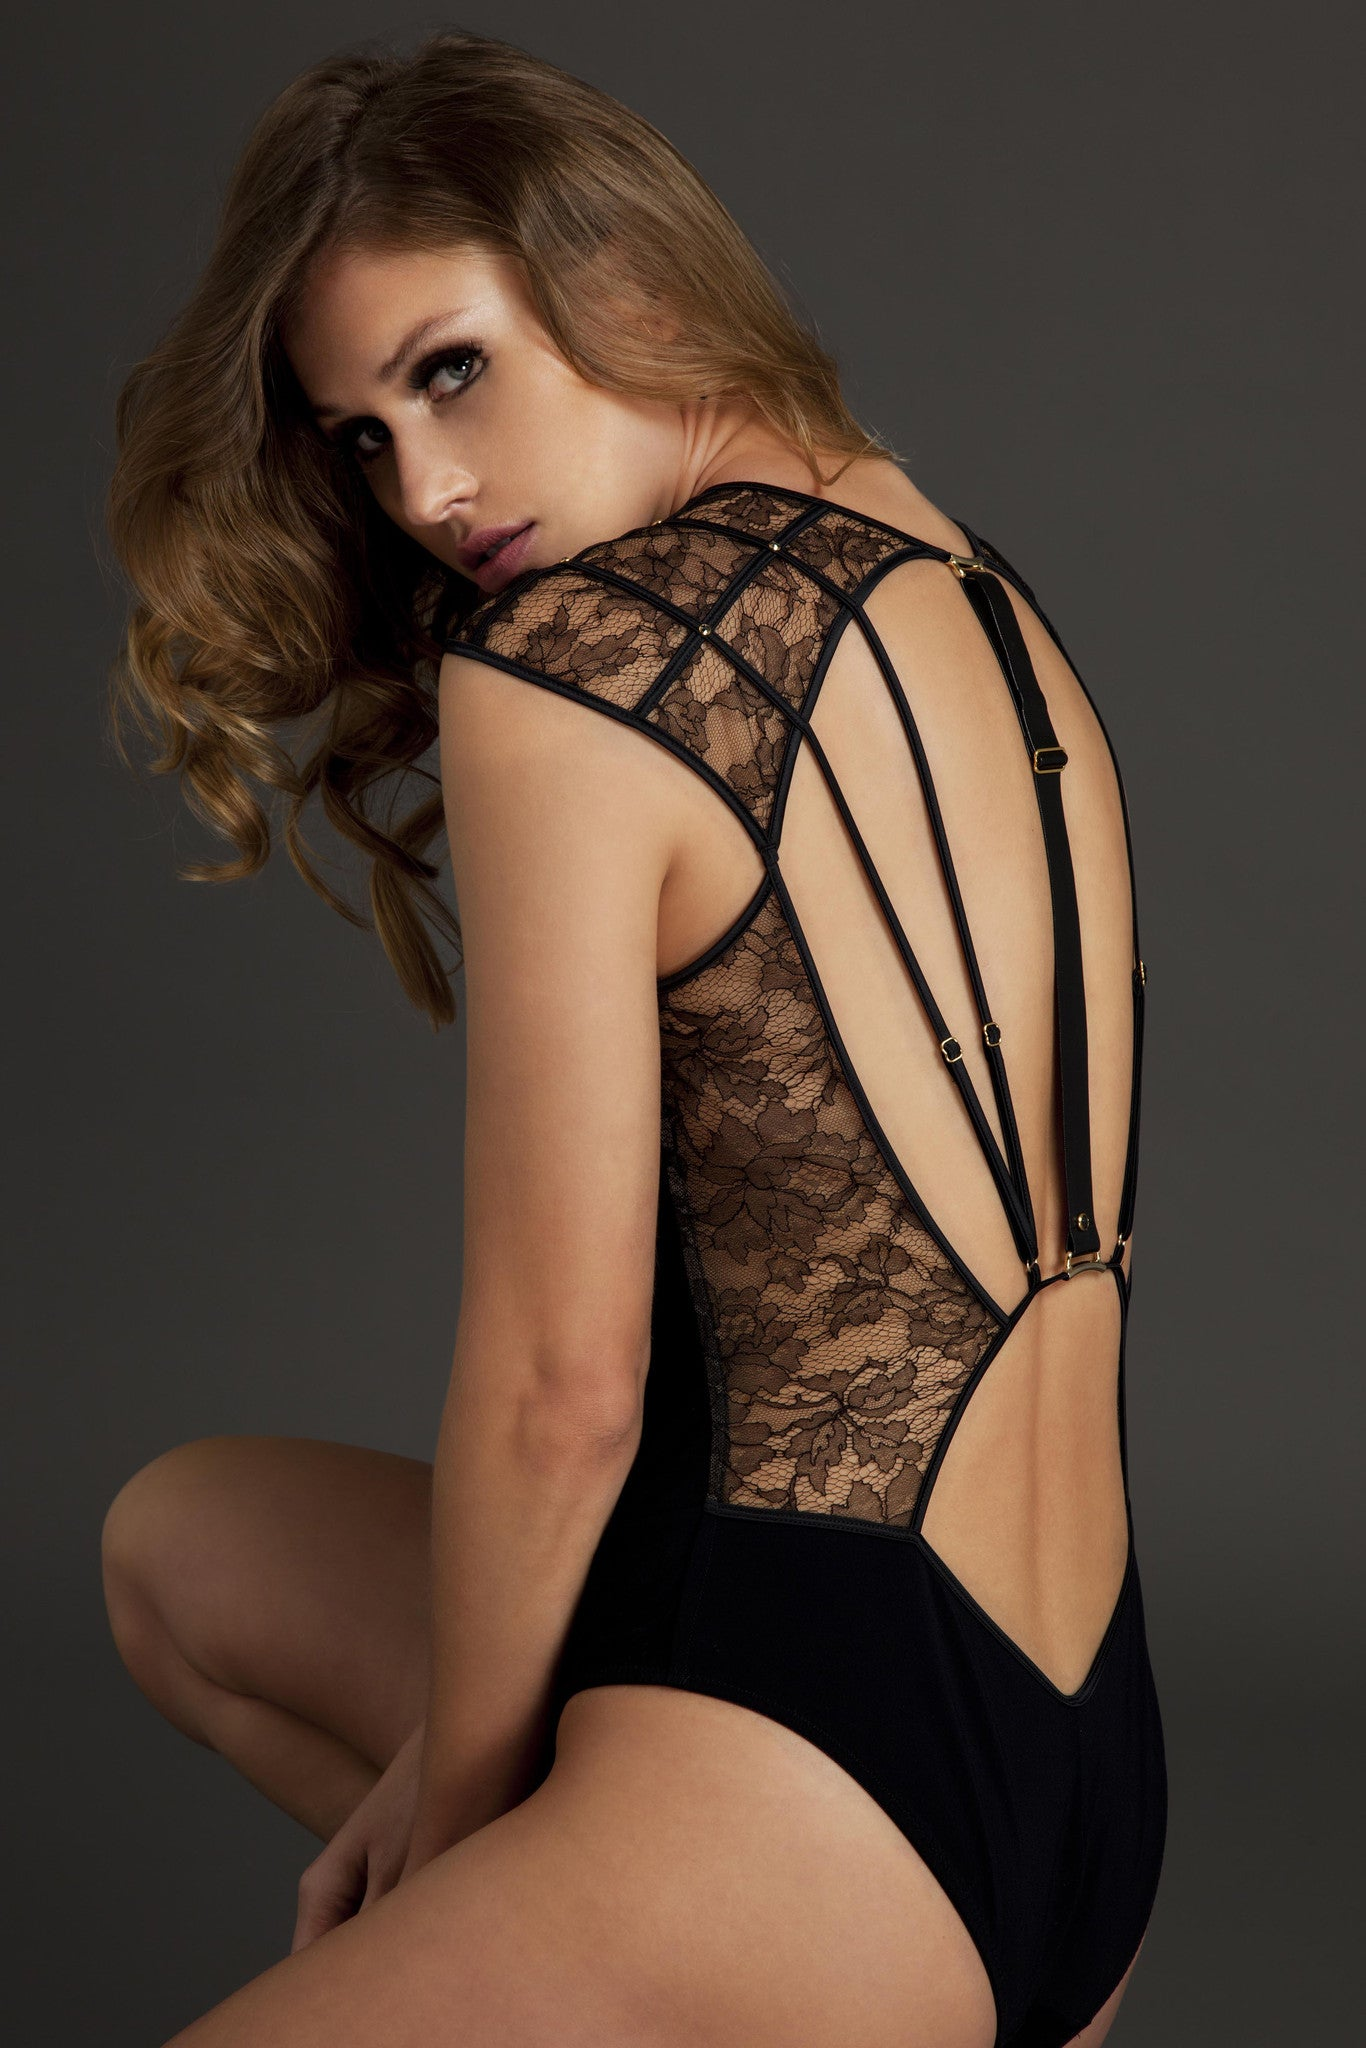 Xena Black designer bodysuit in black lace with luxury strapping back by Tatu Couture